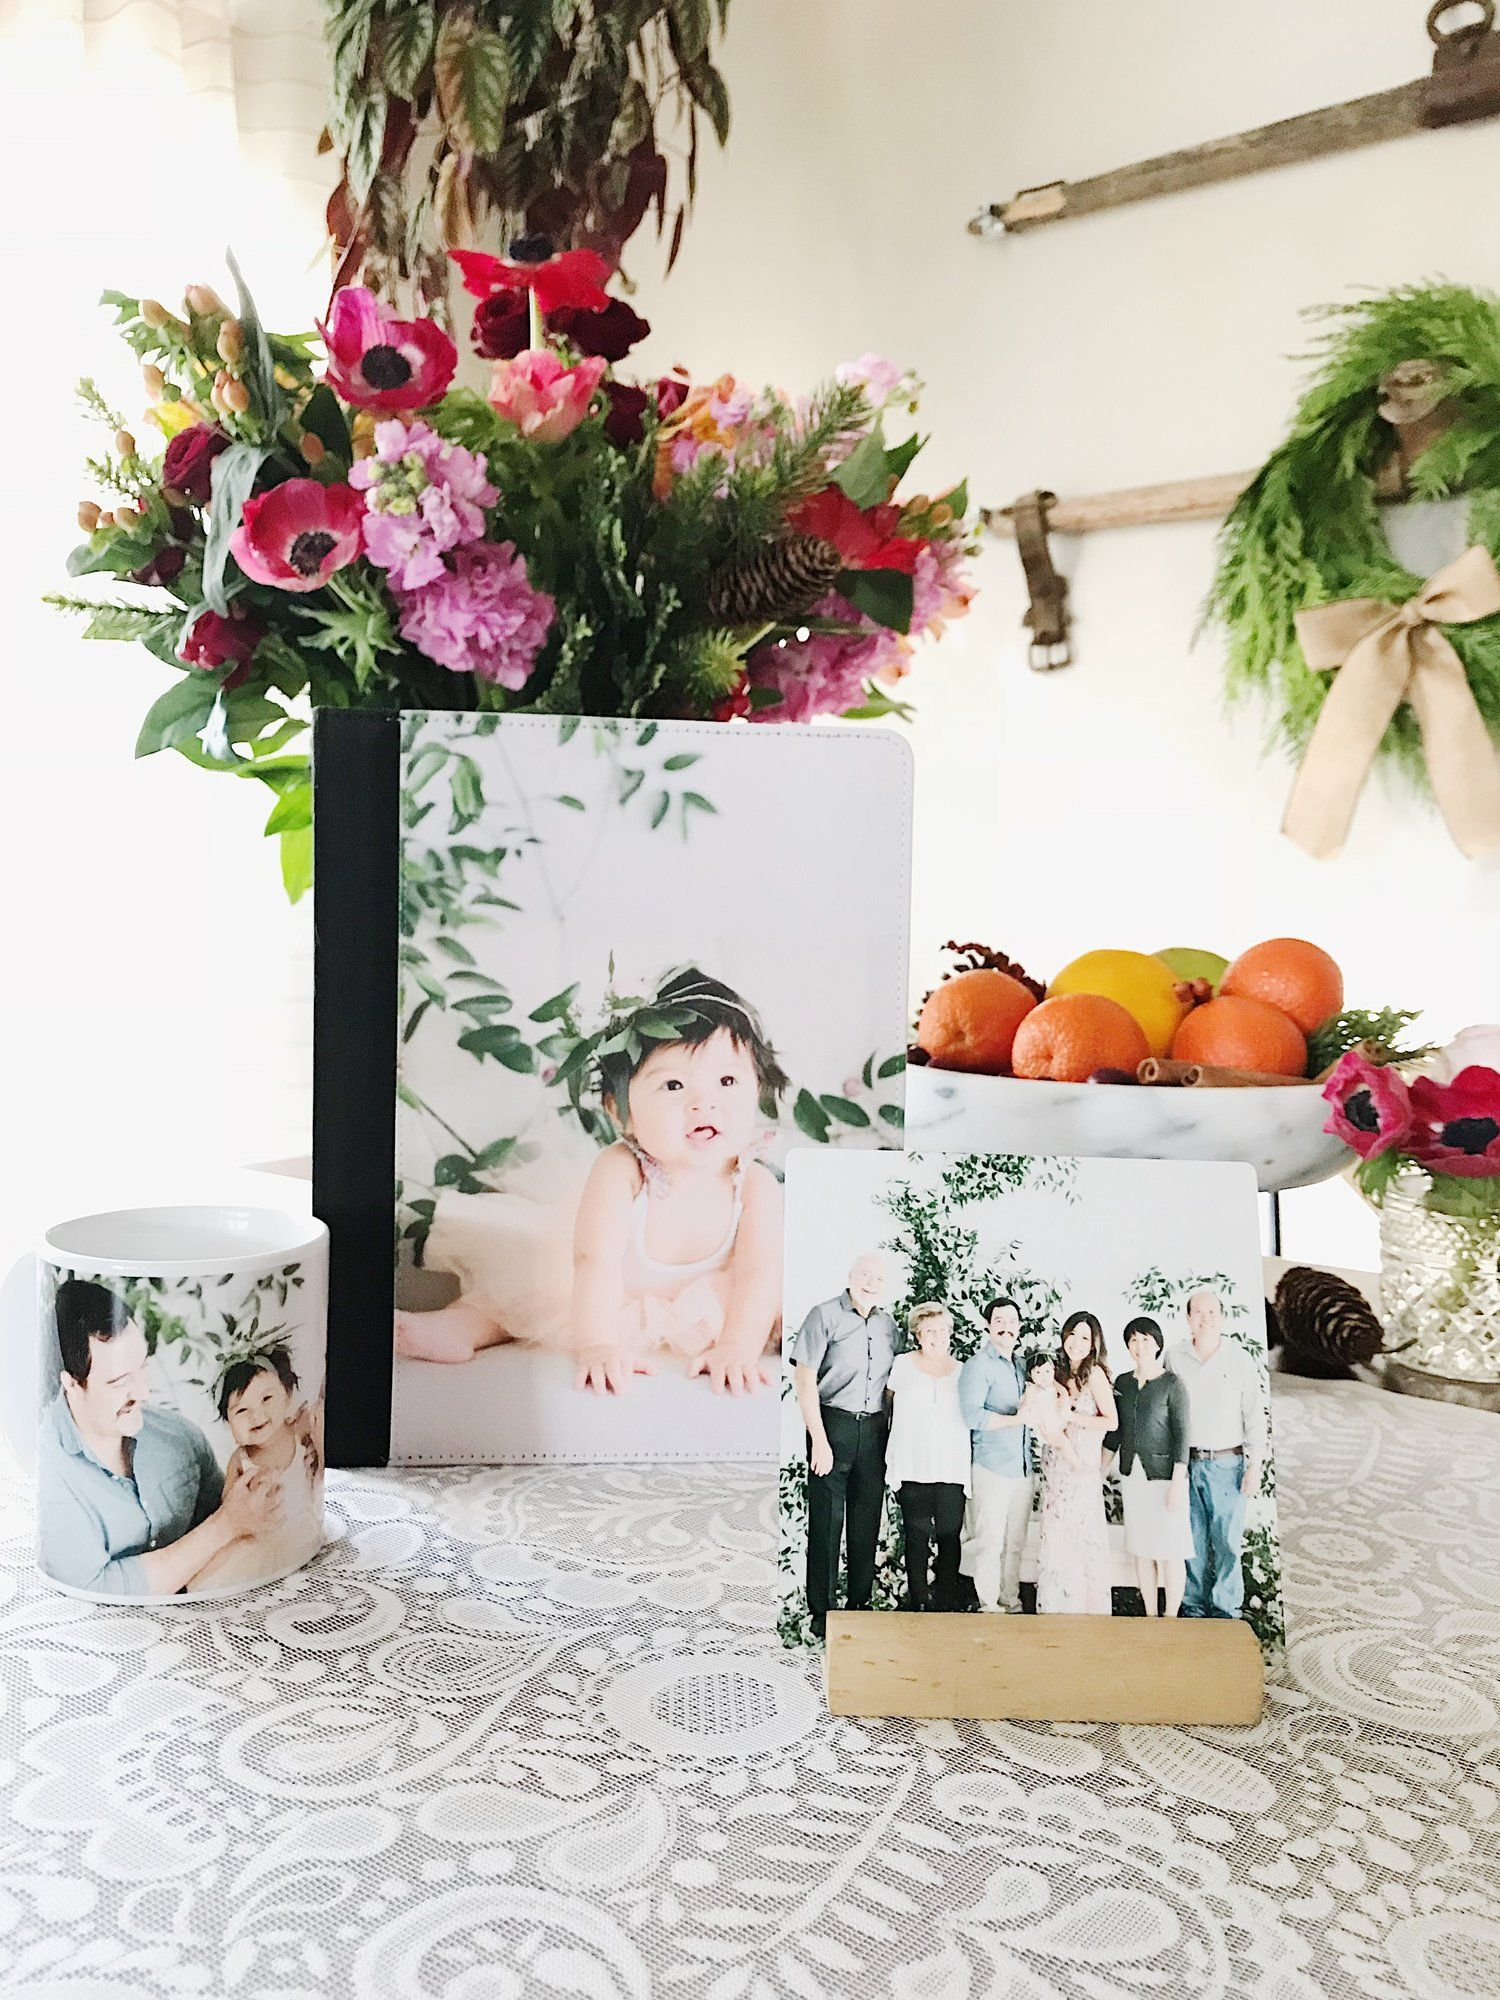 custom personalized holiday gift ideas for mom walmart photo prints